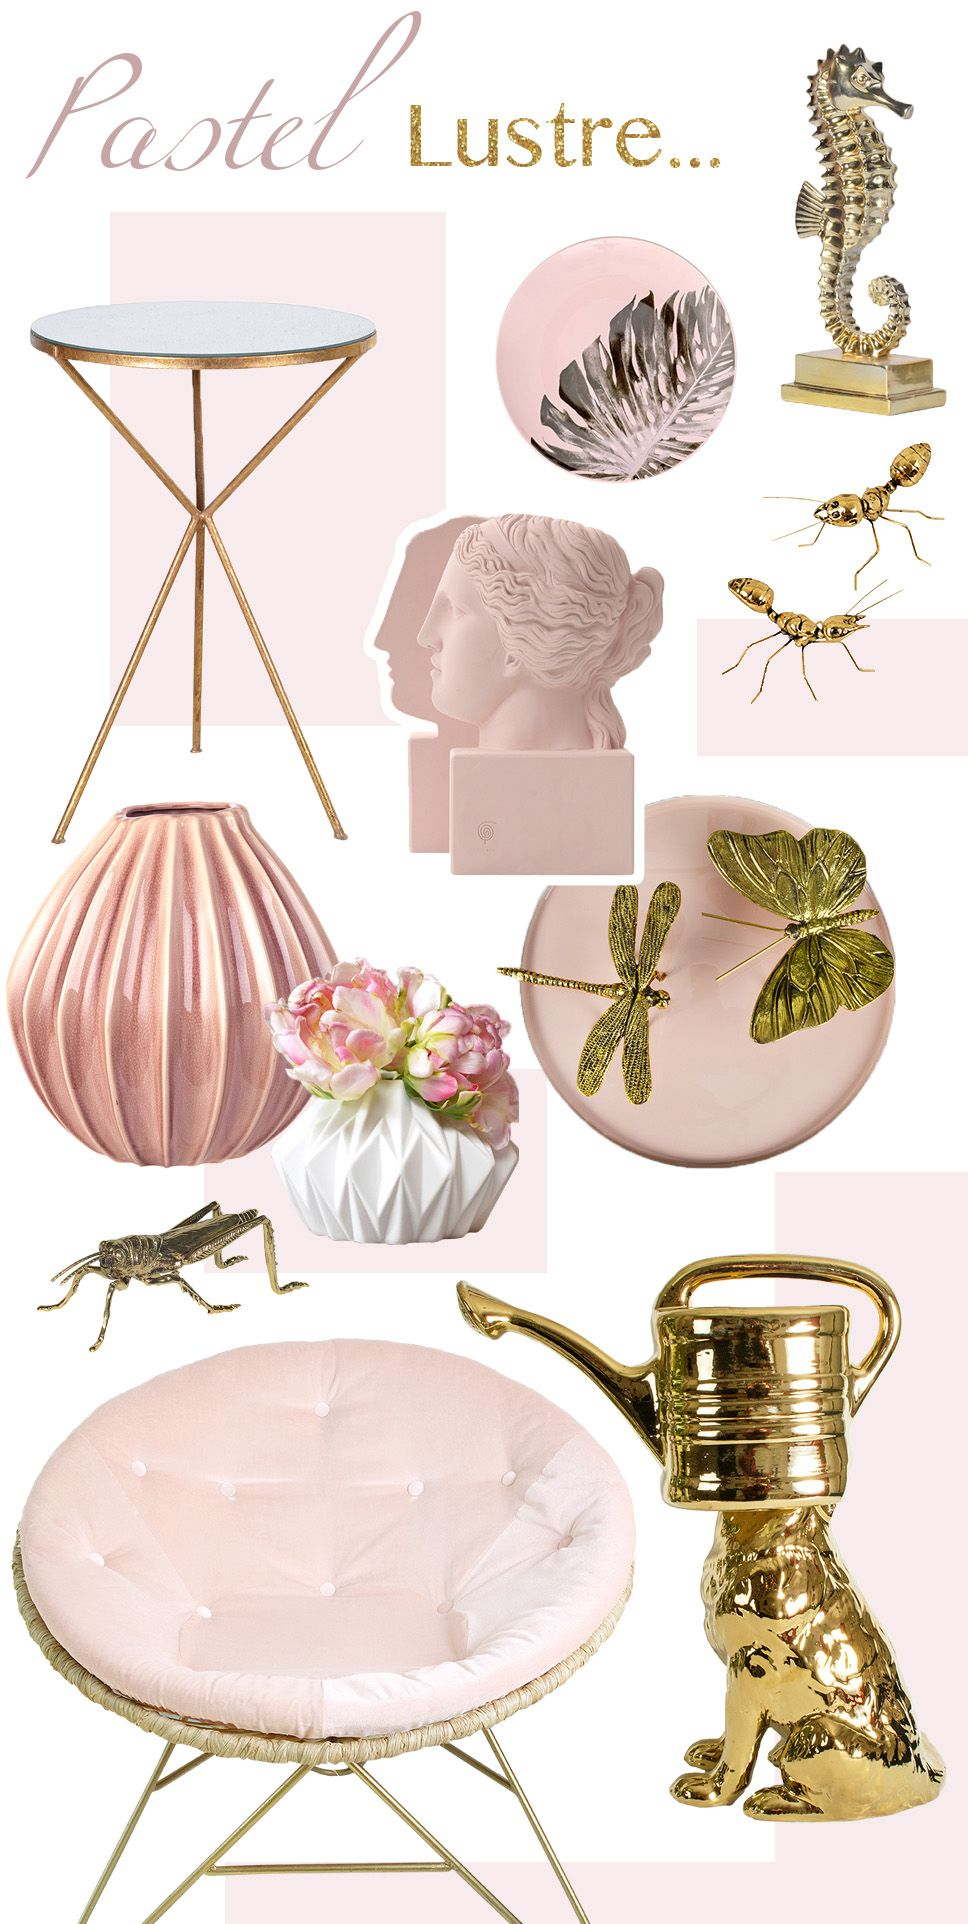 Trend Alert Pastel Lustre is part of Home Accessories Styling Colour - Blush is officially one of the season's hottest colours, so we've put together a mood board for you to get the feel for the pastel lustre trend